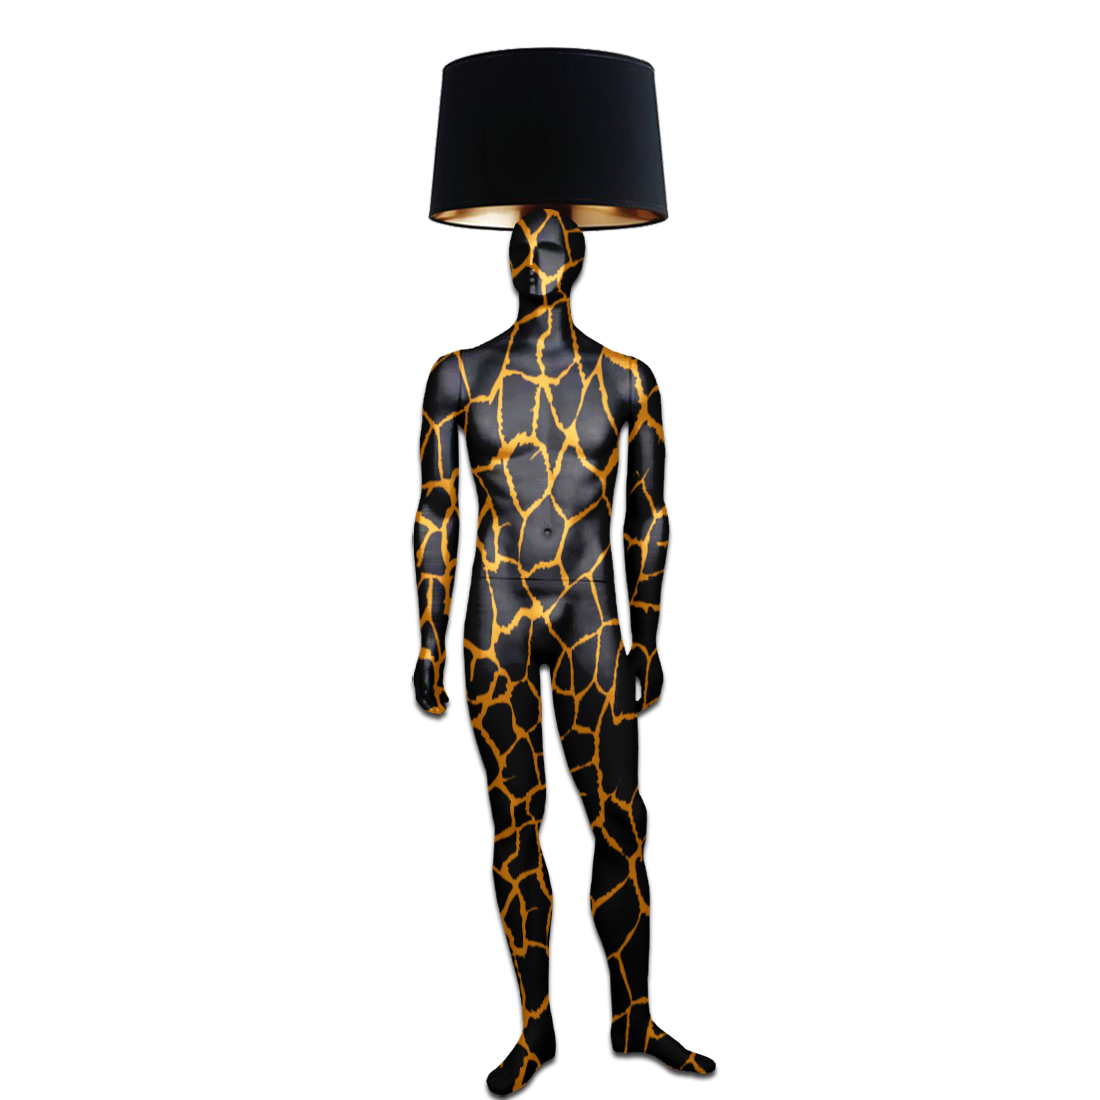 Mannequin Floor Lamp_GOLD VEIN